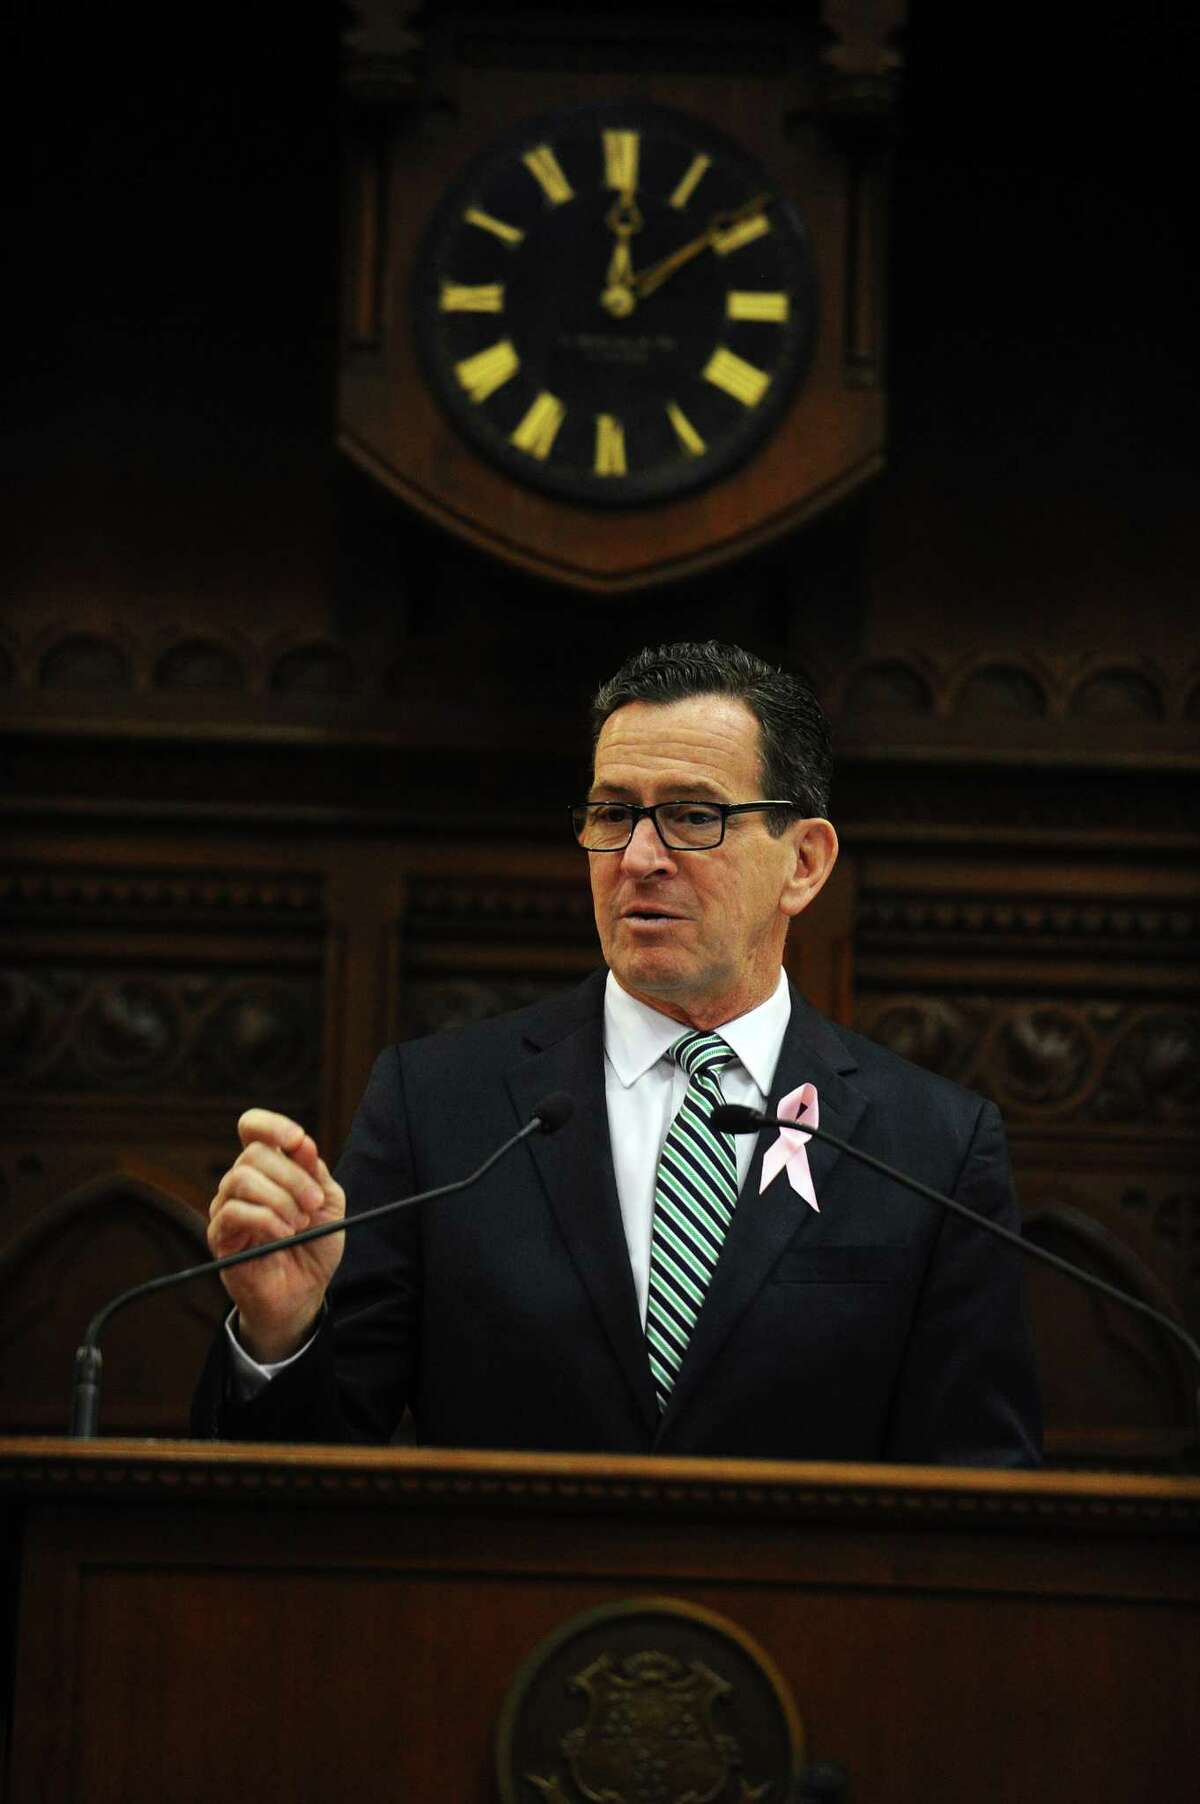 Gov. Dannel Malloy addresses the joint session inside the House chamber of the State Capitol in Hartford in Feb. 2018.